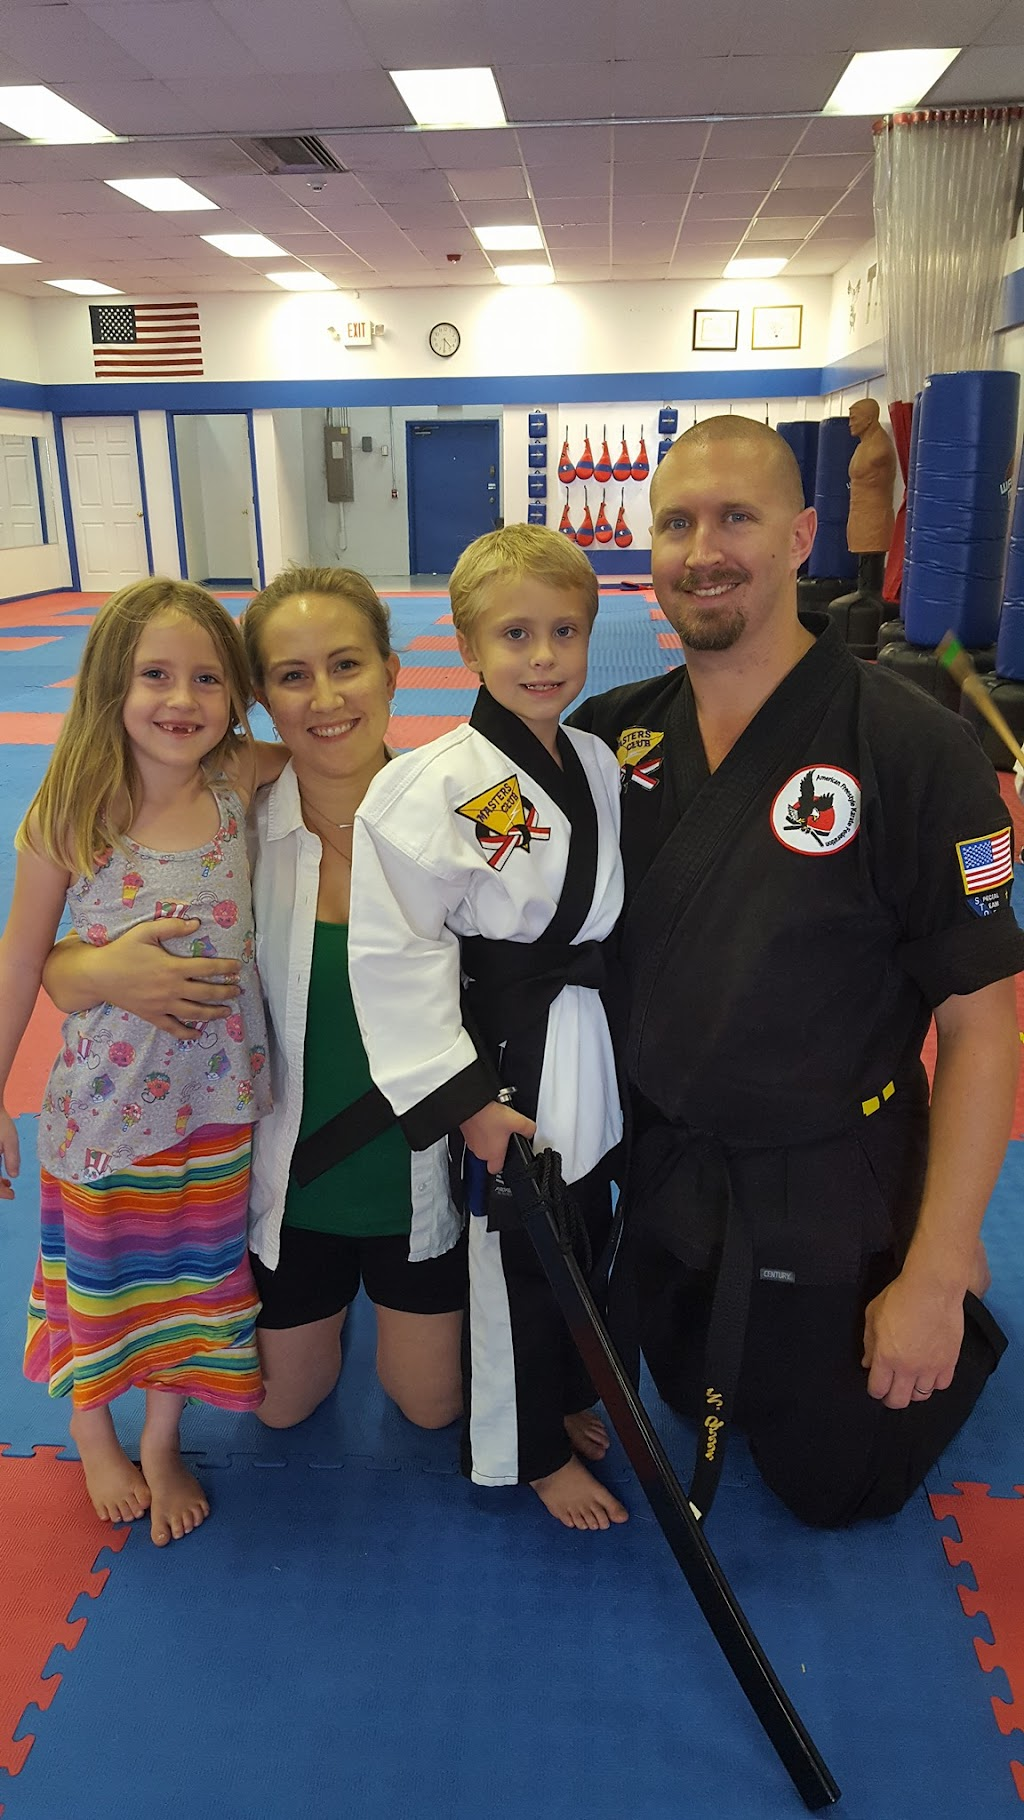 Kids Martial Arts instructor Nathan Green